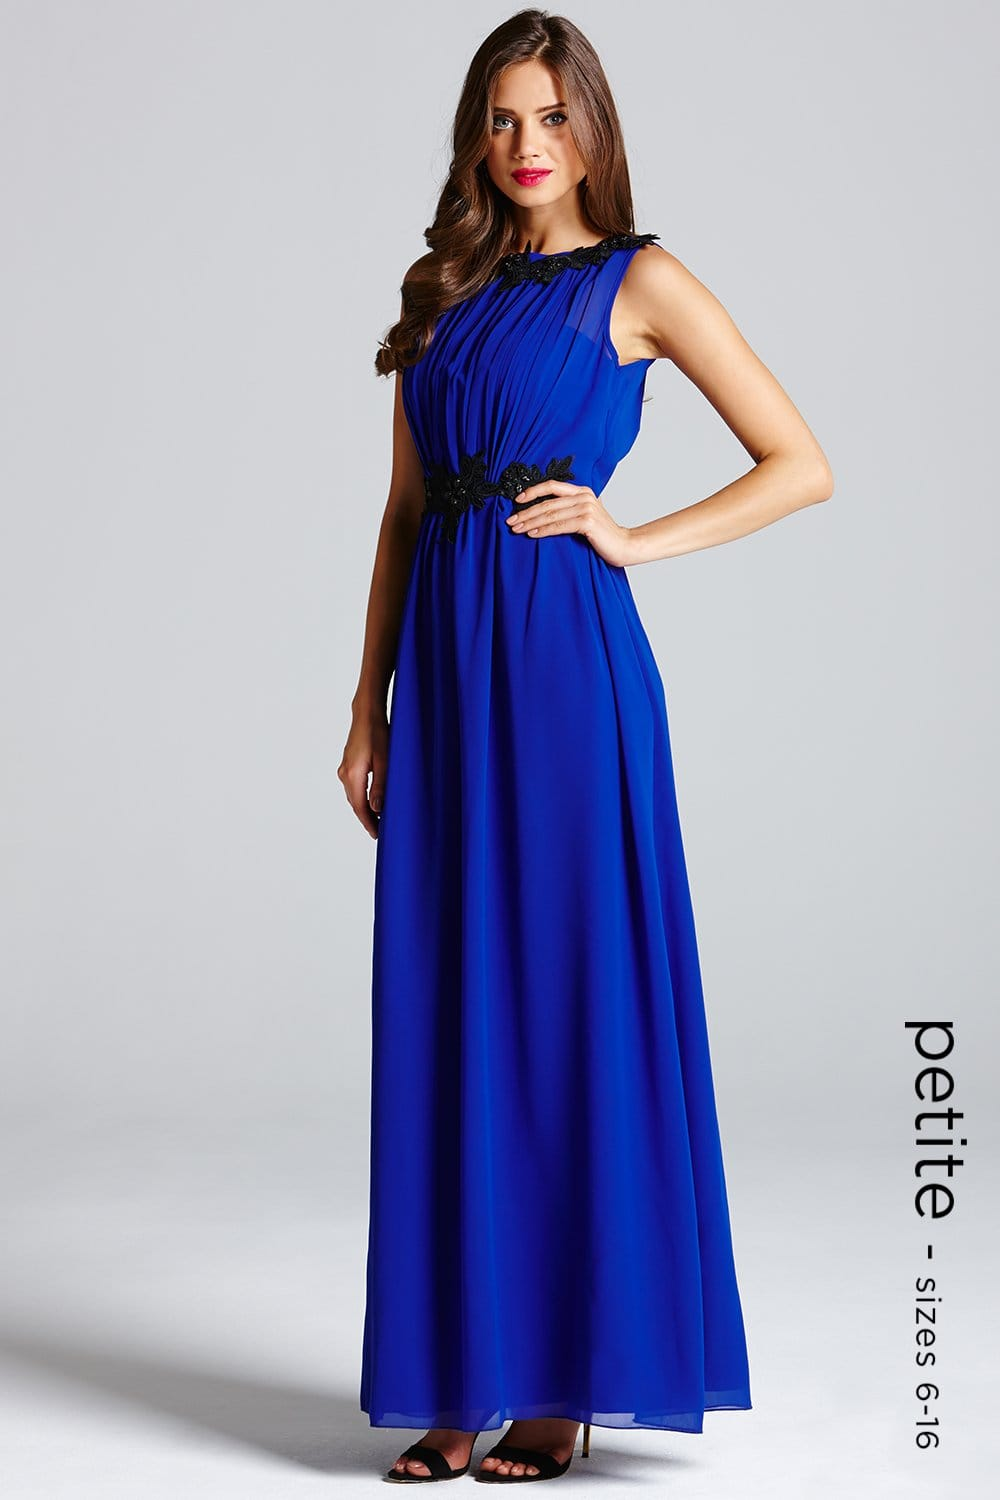 Petite Blue Floral Embroidered Chiffon Maxi Dress From